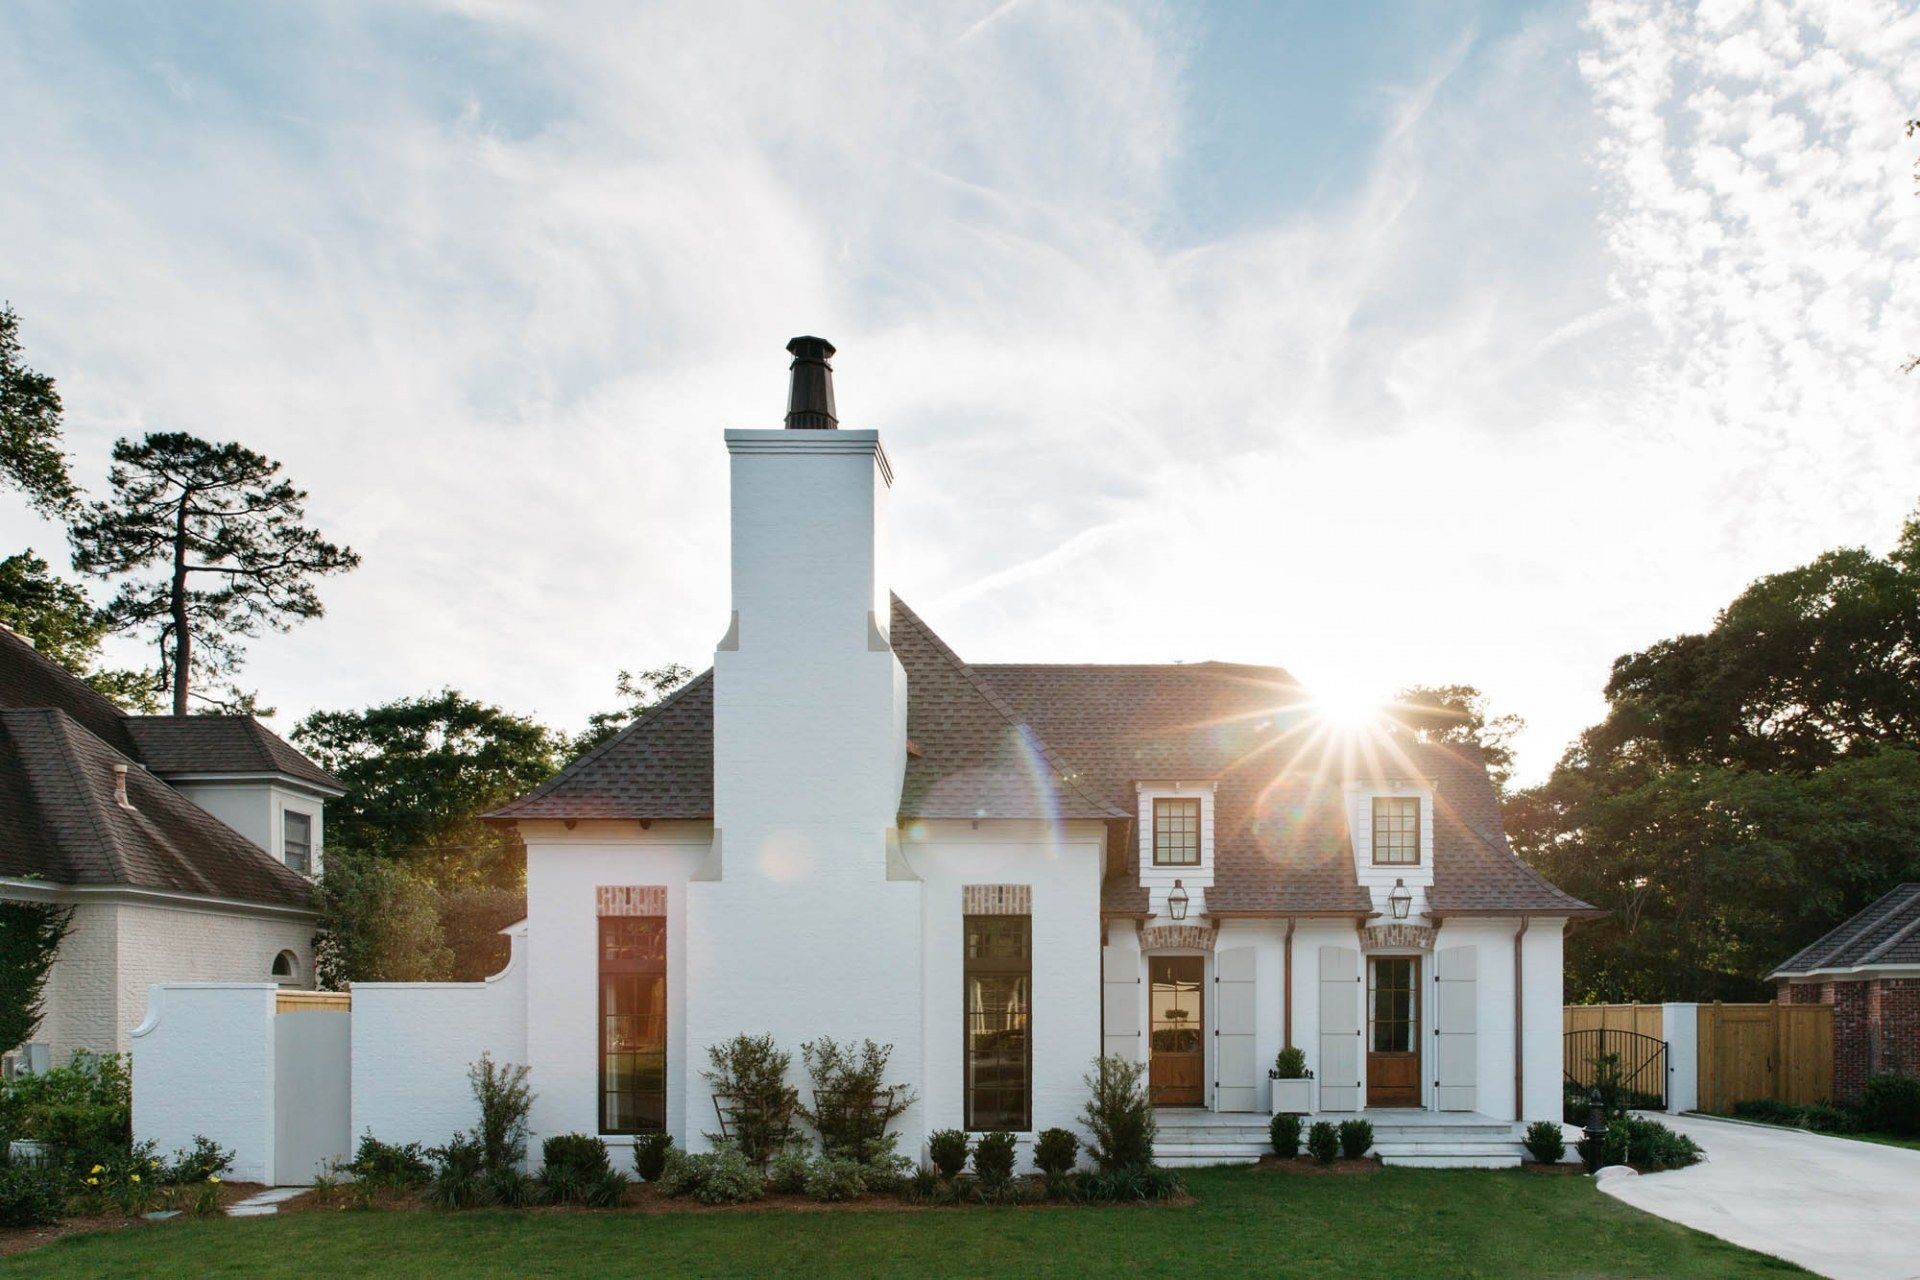 Modern French Farmhouse Exterior French Cottage Home By Mccown Design E X T E R I O R S In 2019